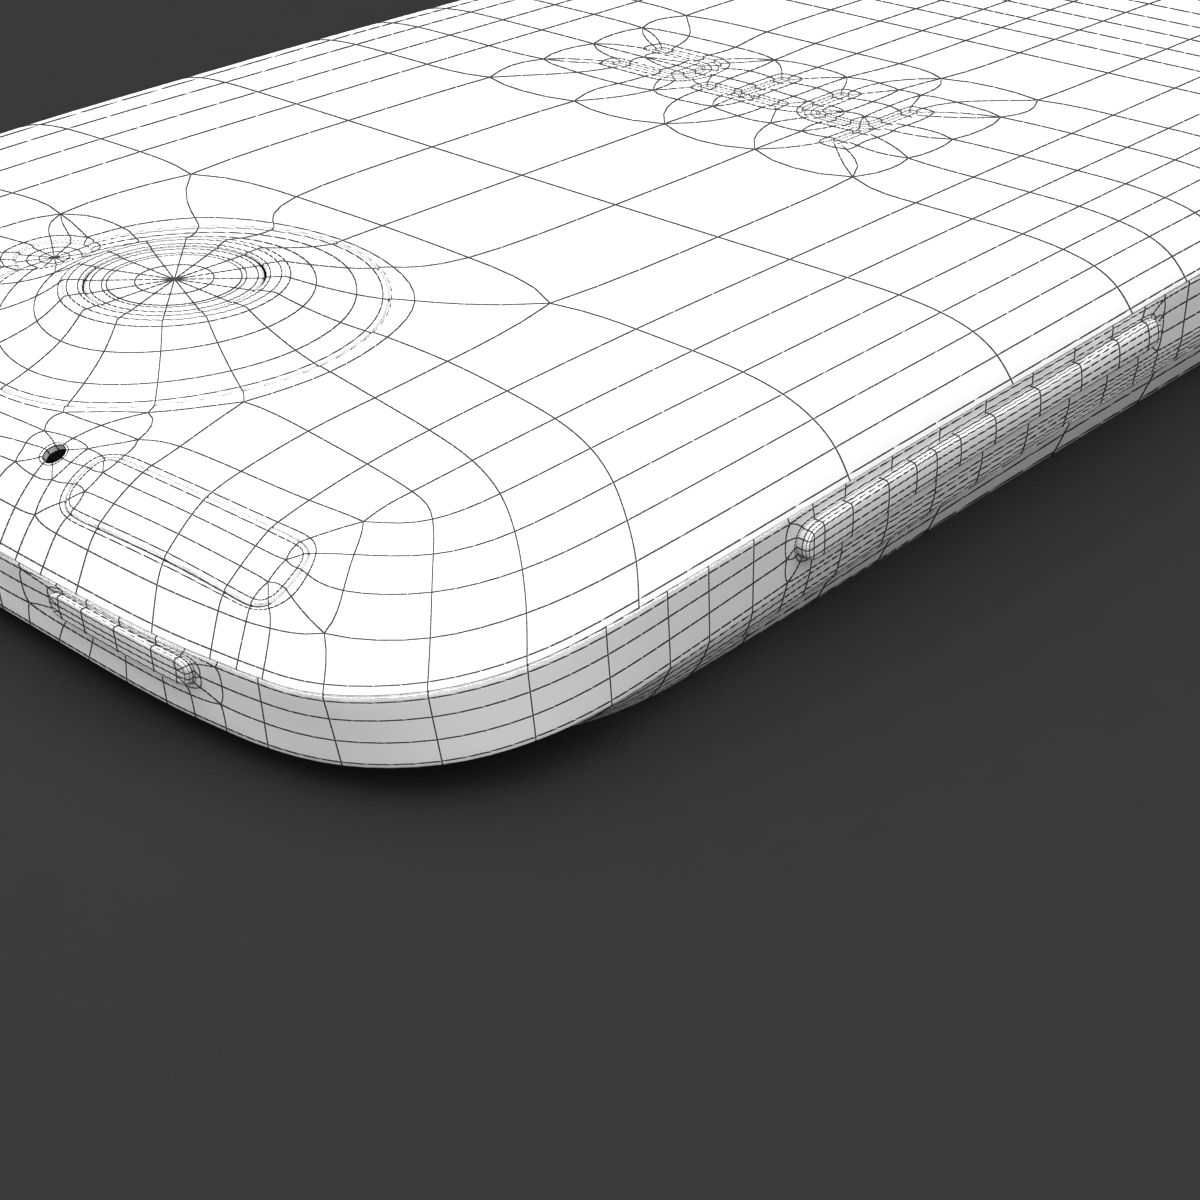 htc one x+ black and white 3d model 3ds max fbx c4d lwo obj 151480